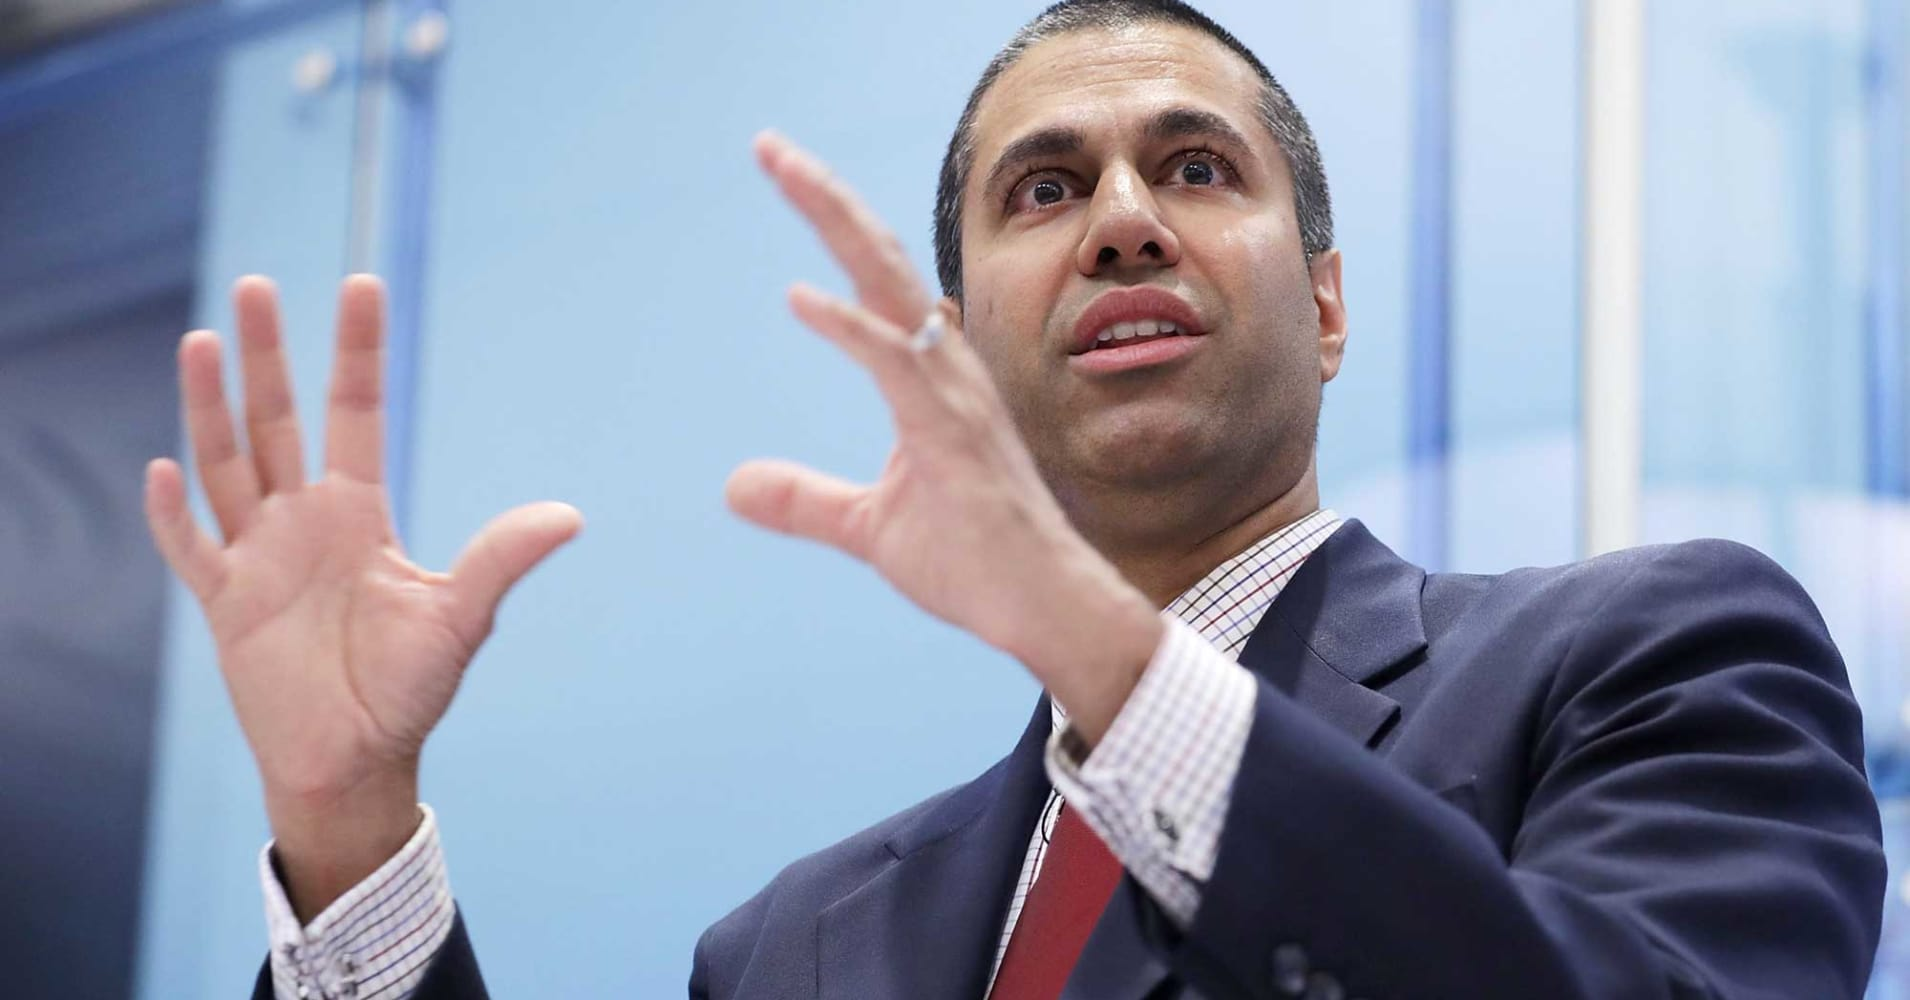 The FCC's 'open internet rules' make the internet less open